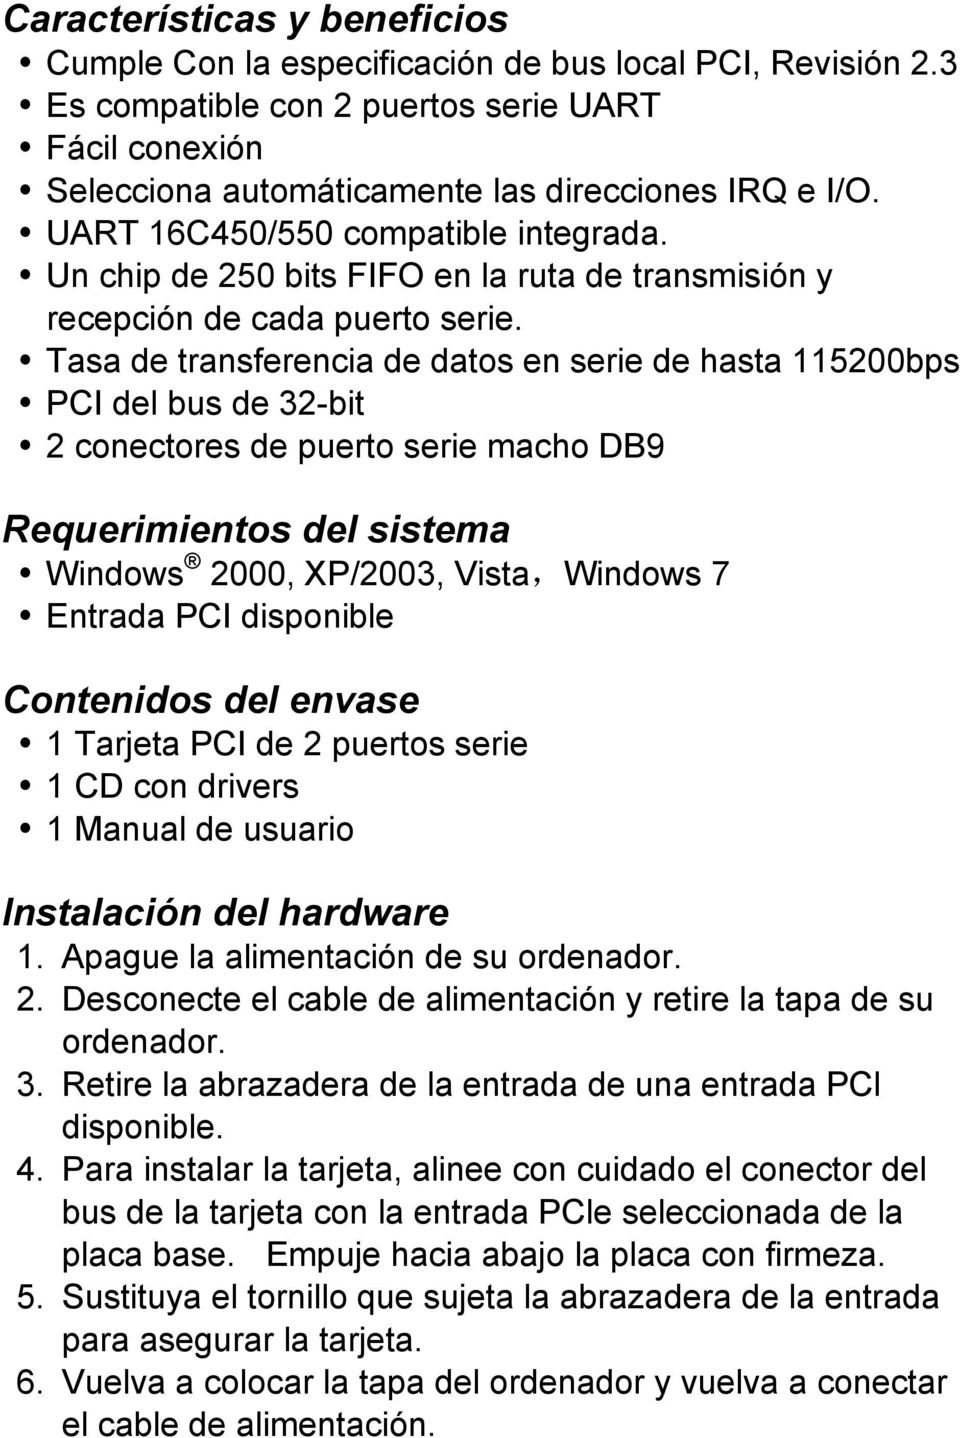 Tasa de transferencia de datos en serie de hasta 115200bps PCI del bus de 32-bit 2 conectores de puerto serie macho DB9 Requerimientos del sistema Windows 2000, XP/2003, Vista,Windows 7 Entrada PCI